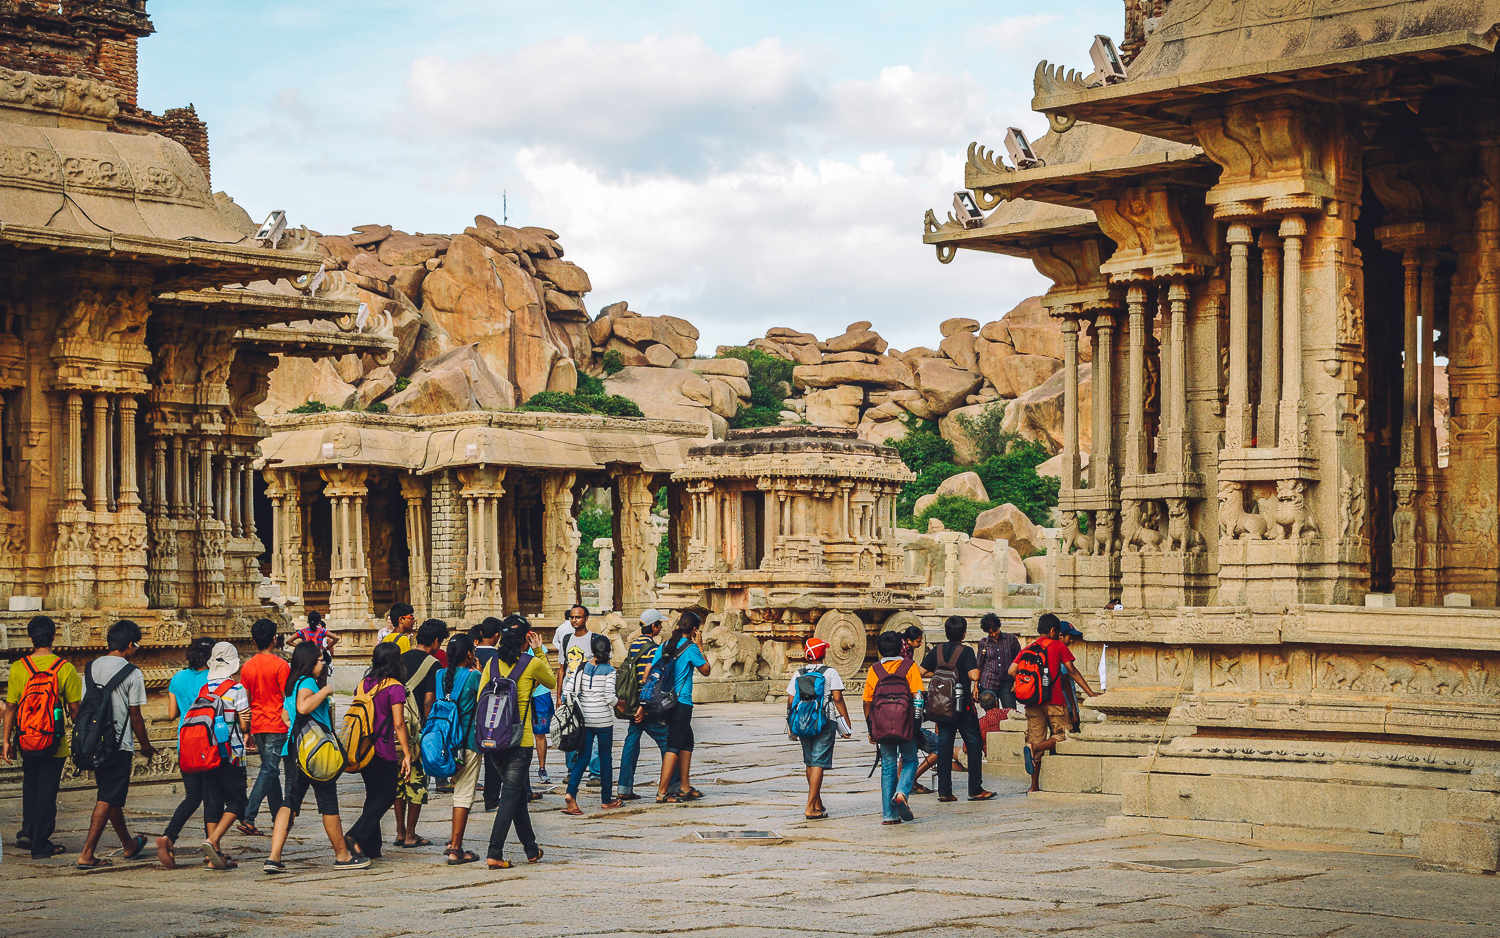 Hampi: Photo from a previous trip